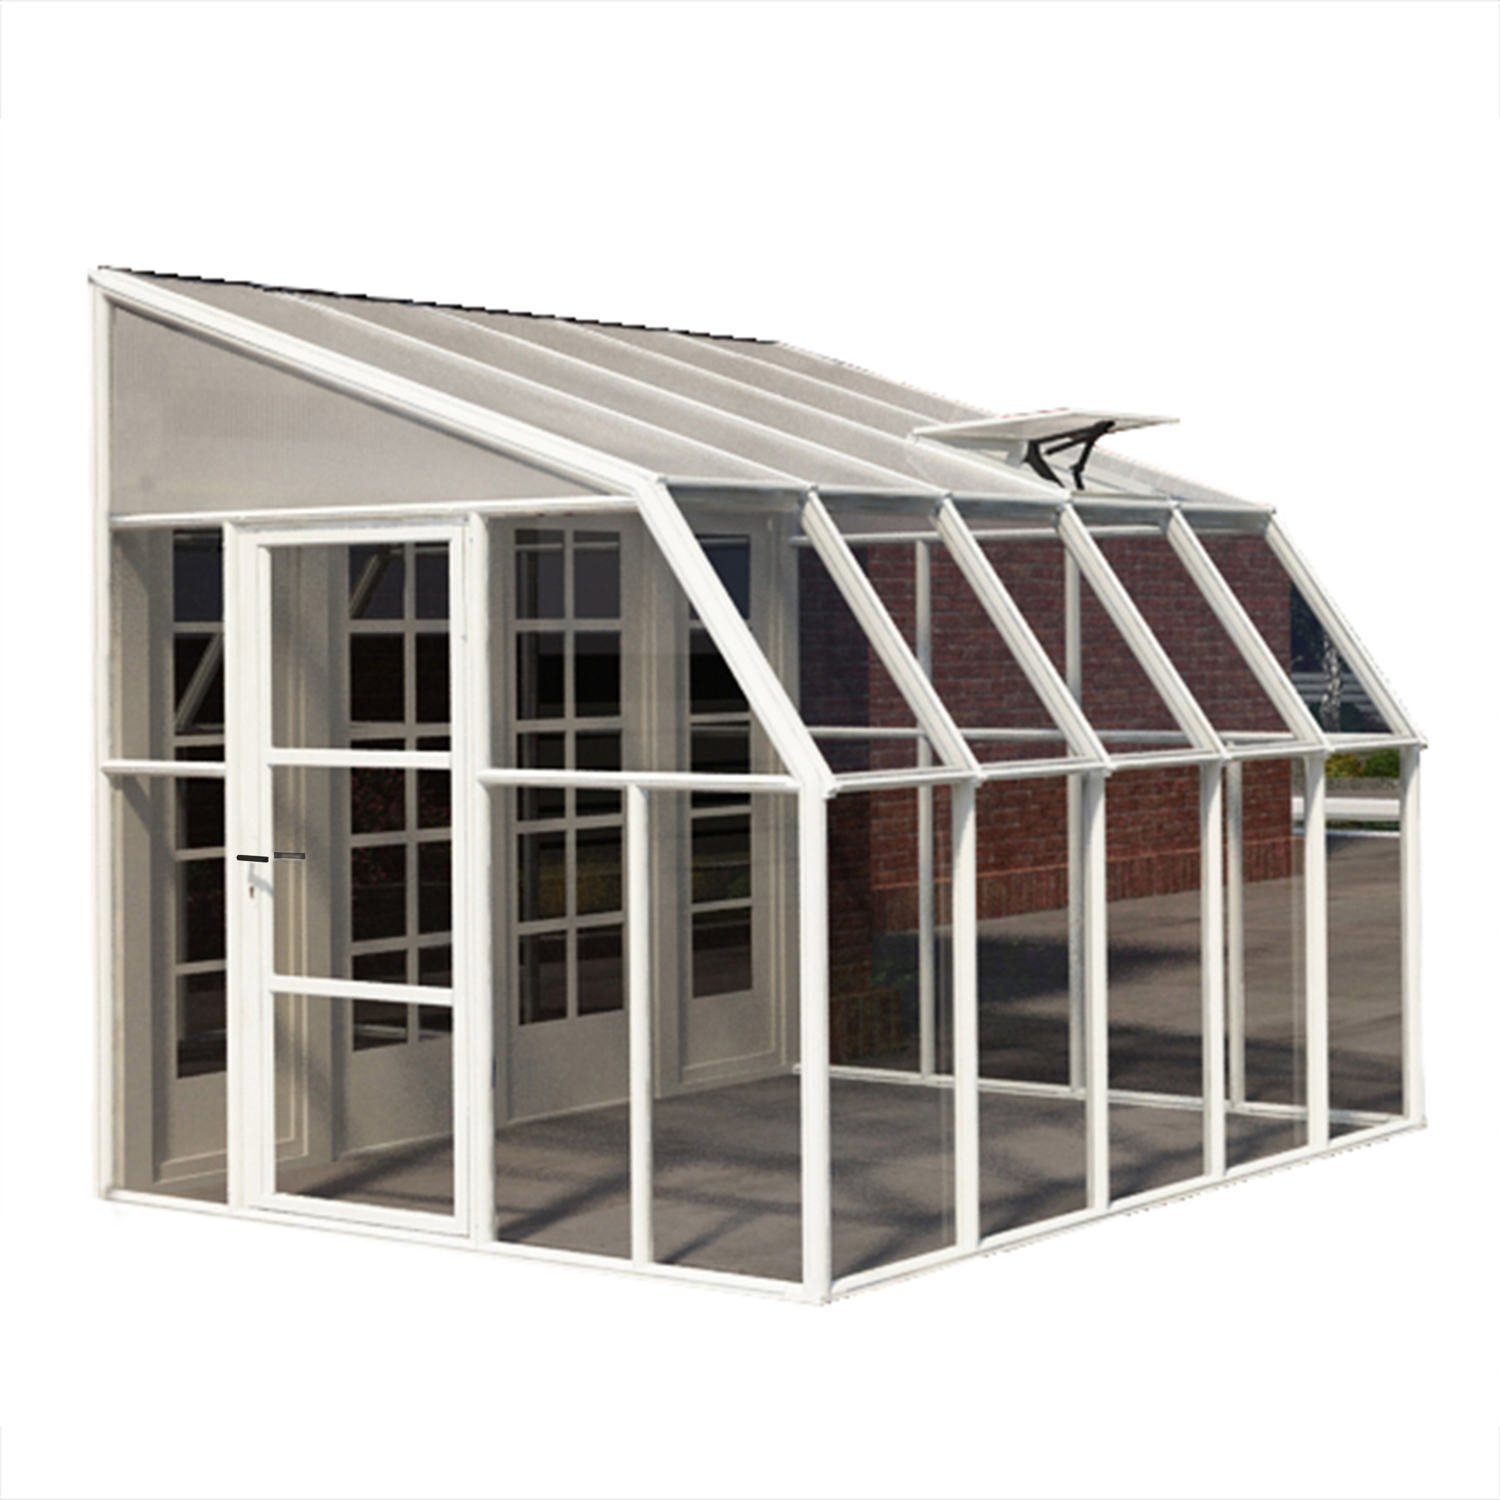 Rion sun room 8x10 lean to greenhouse polycarbonate for Sunroom attached to house